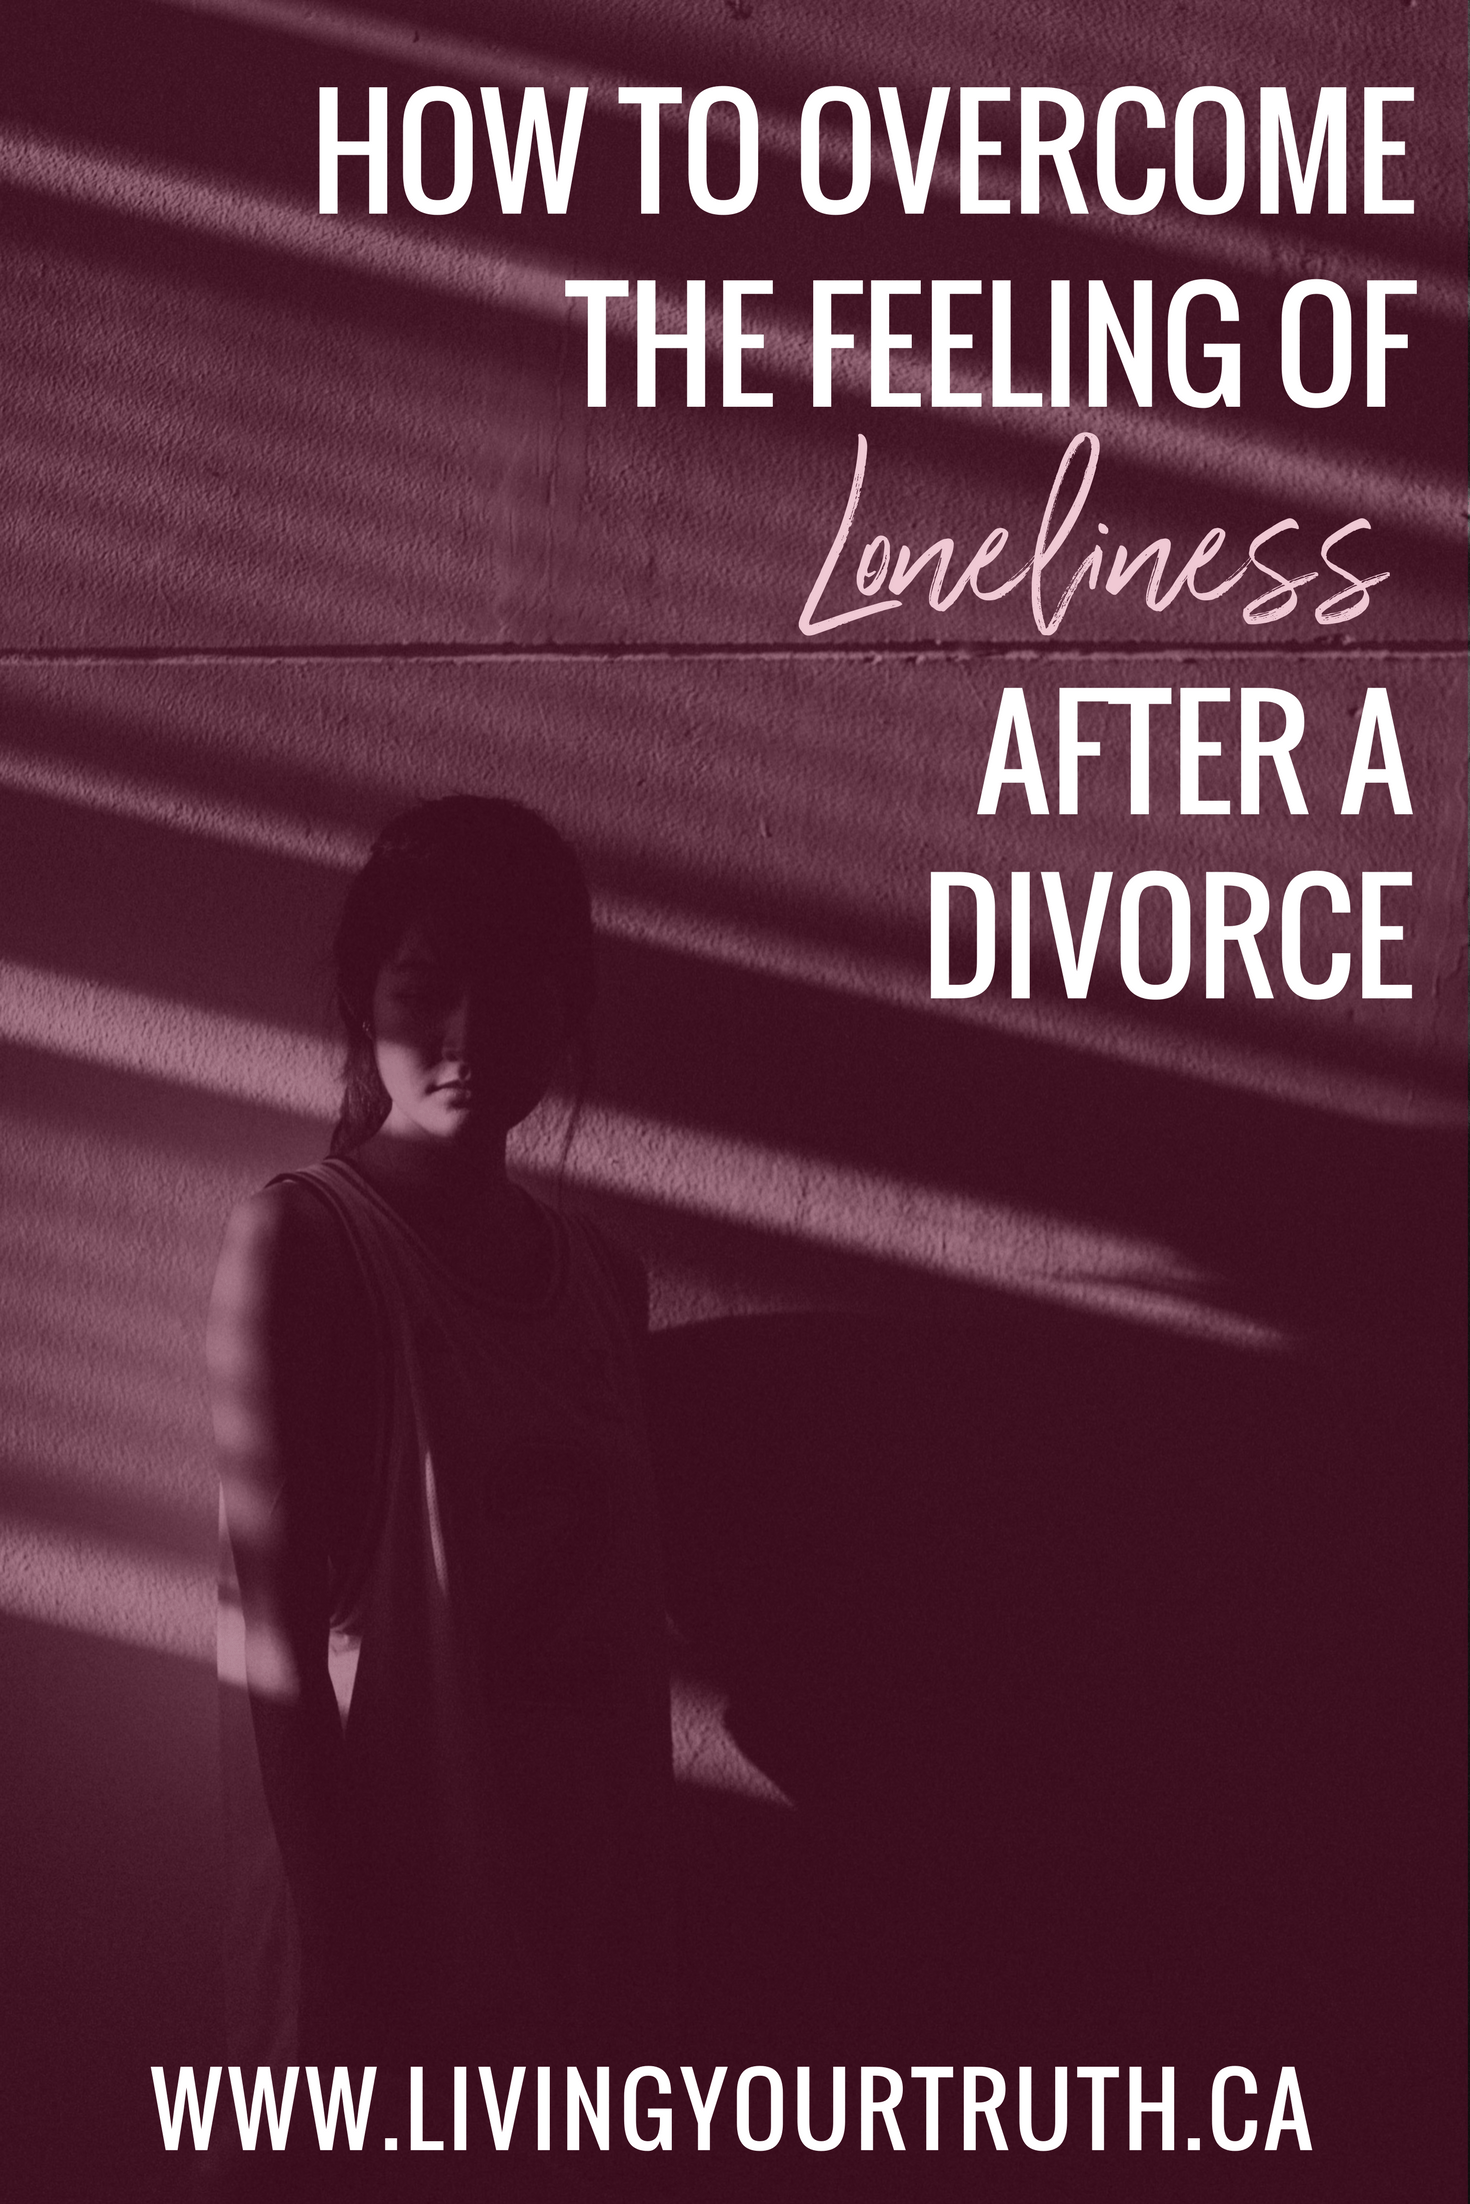 How to combat loneliness after divorce